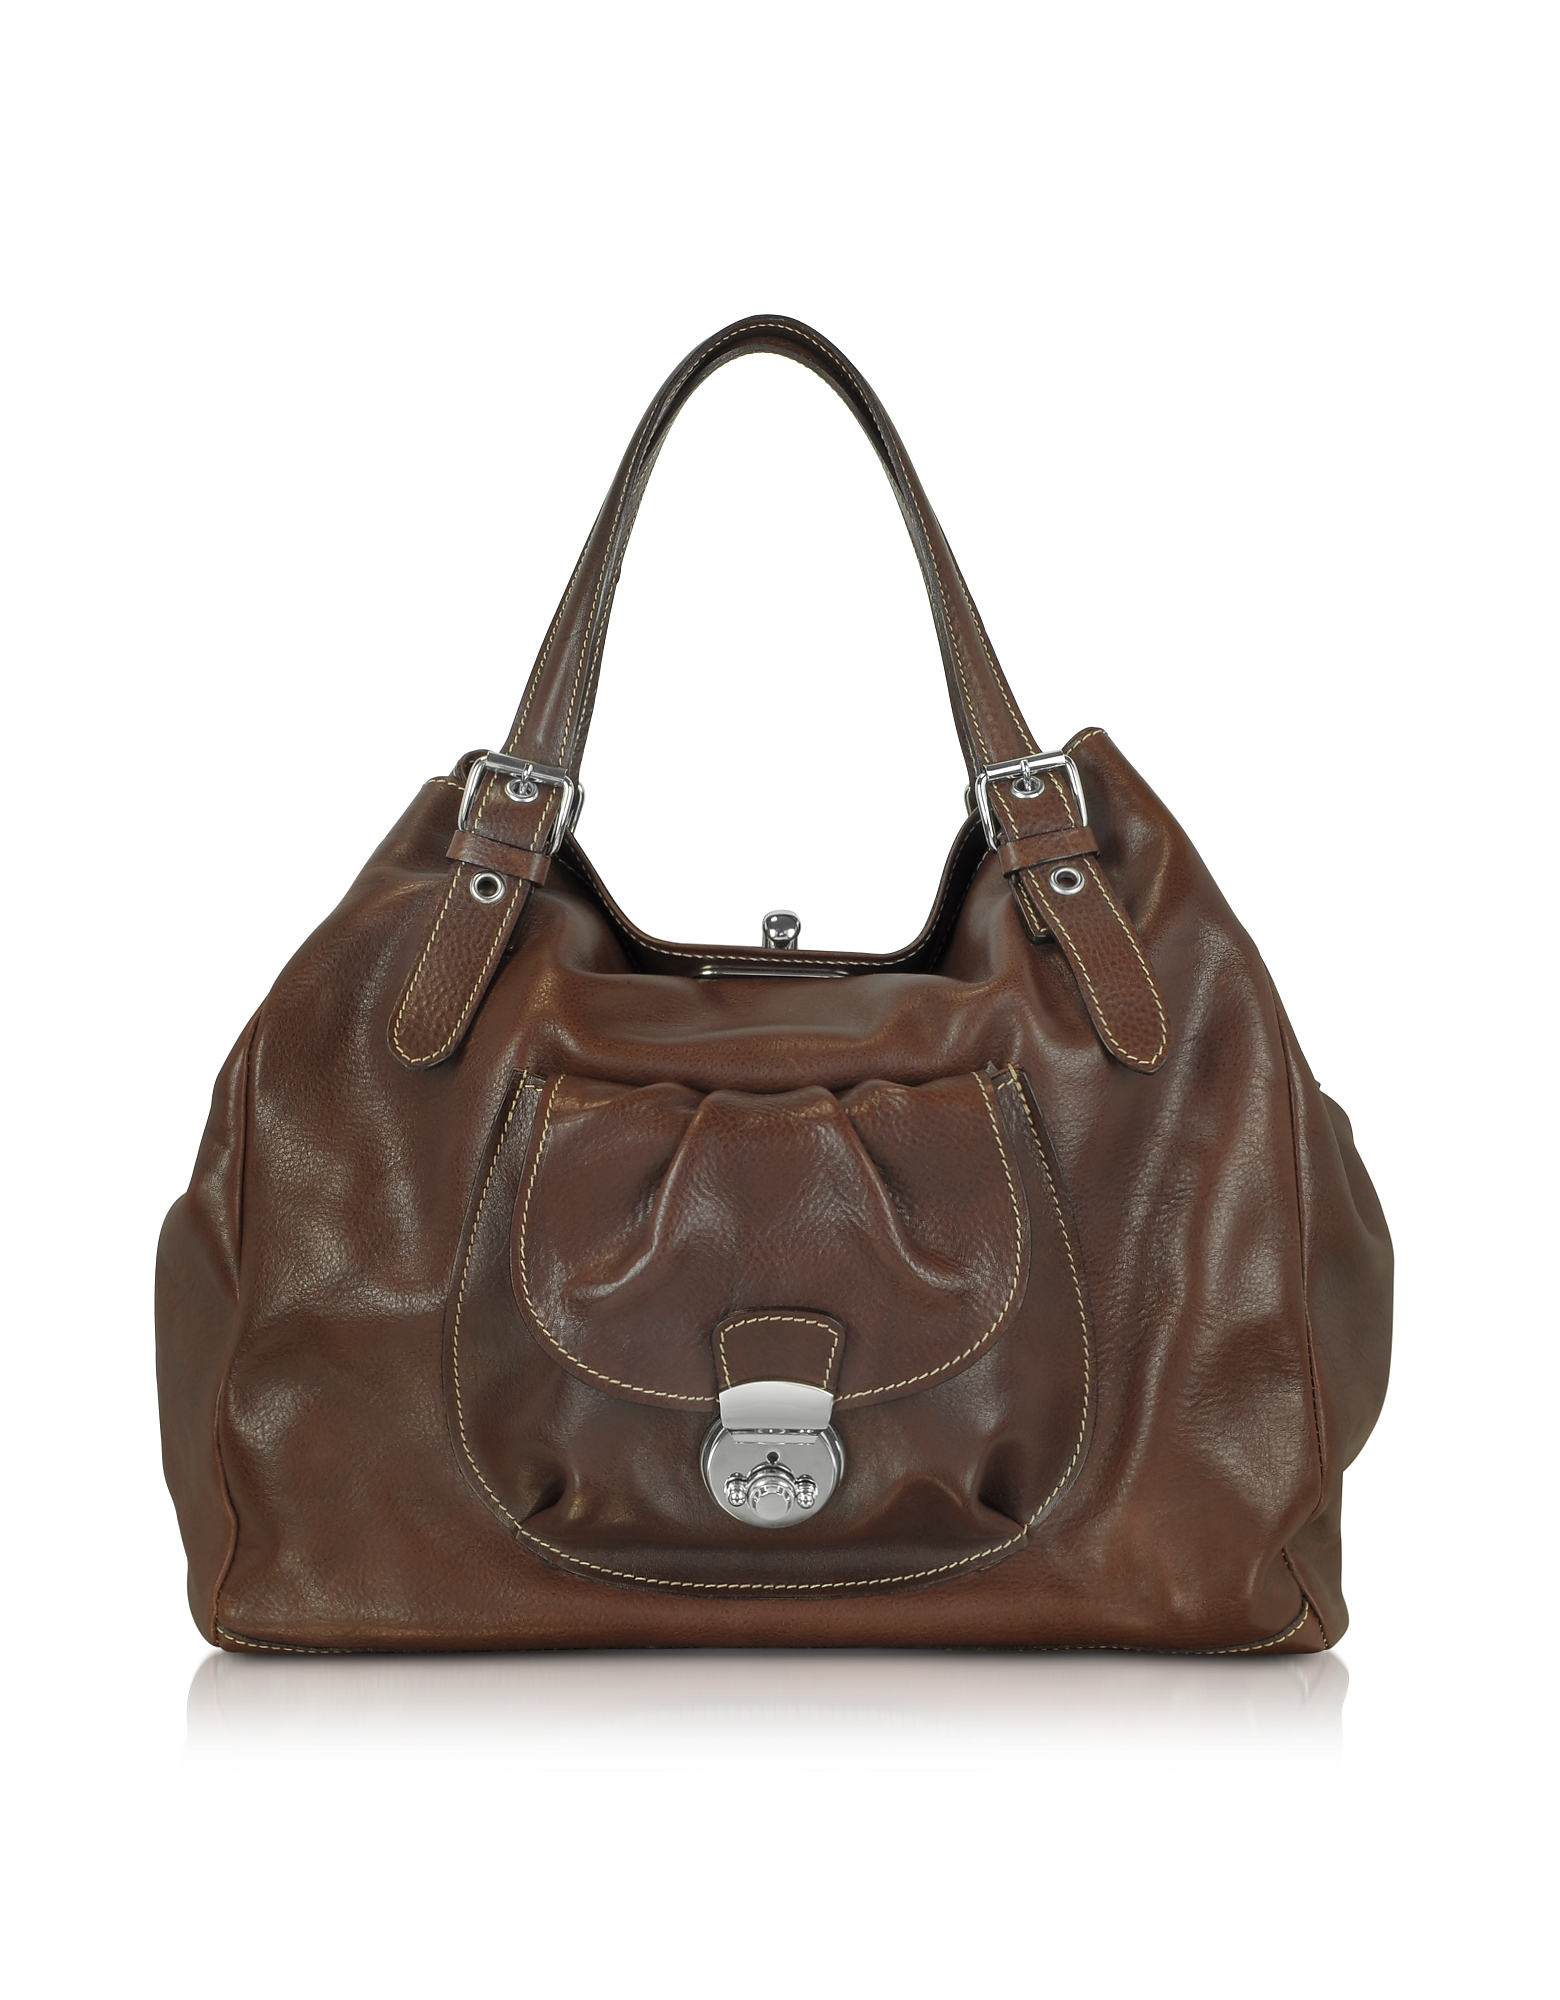 Robe di Firenze Handbags, Brown Italian Leather Tote